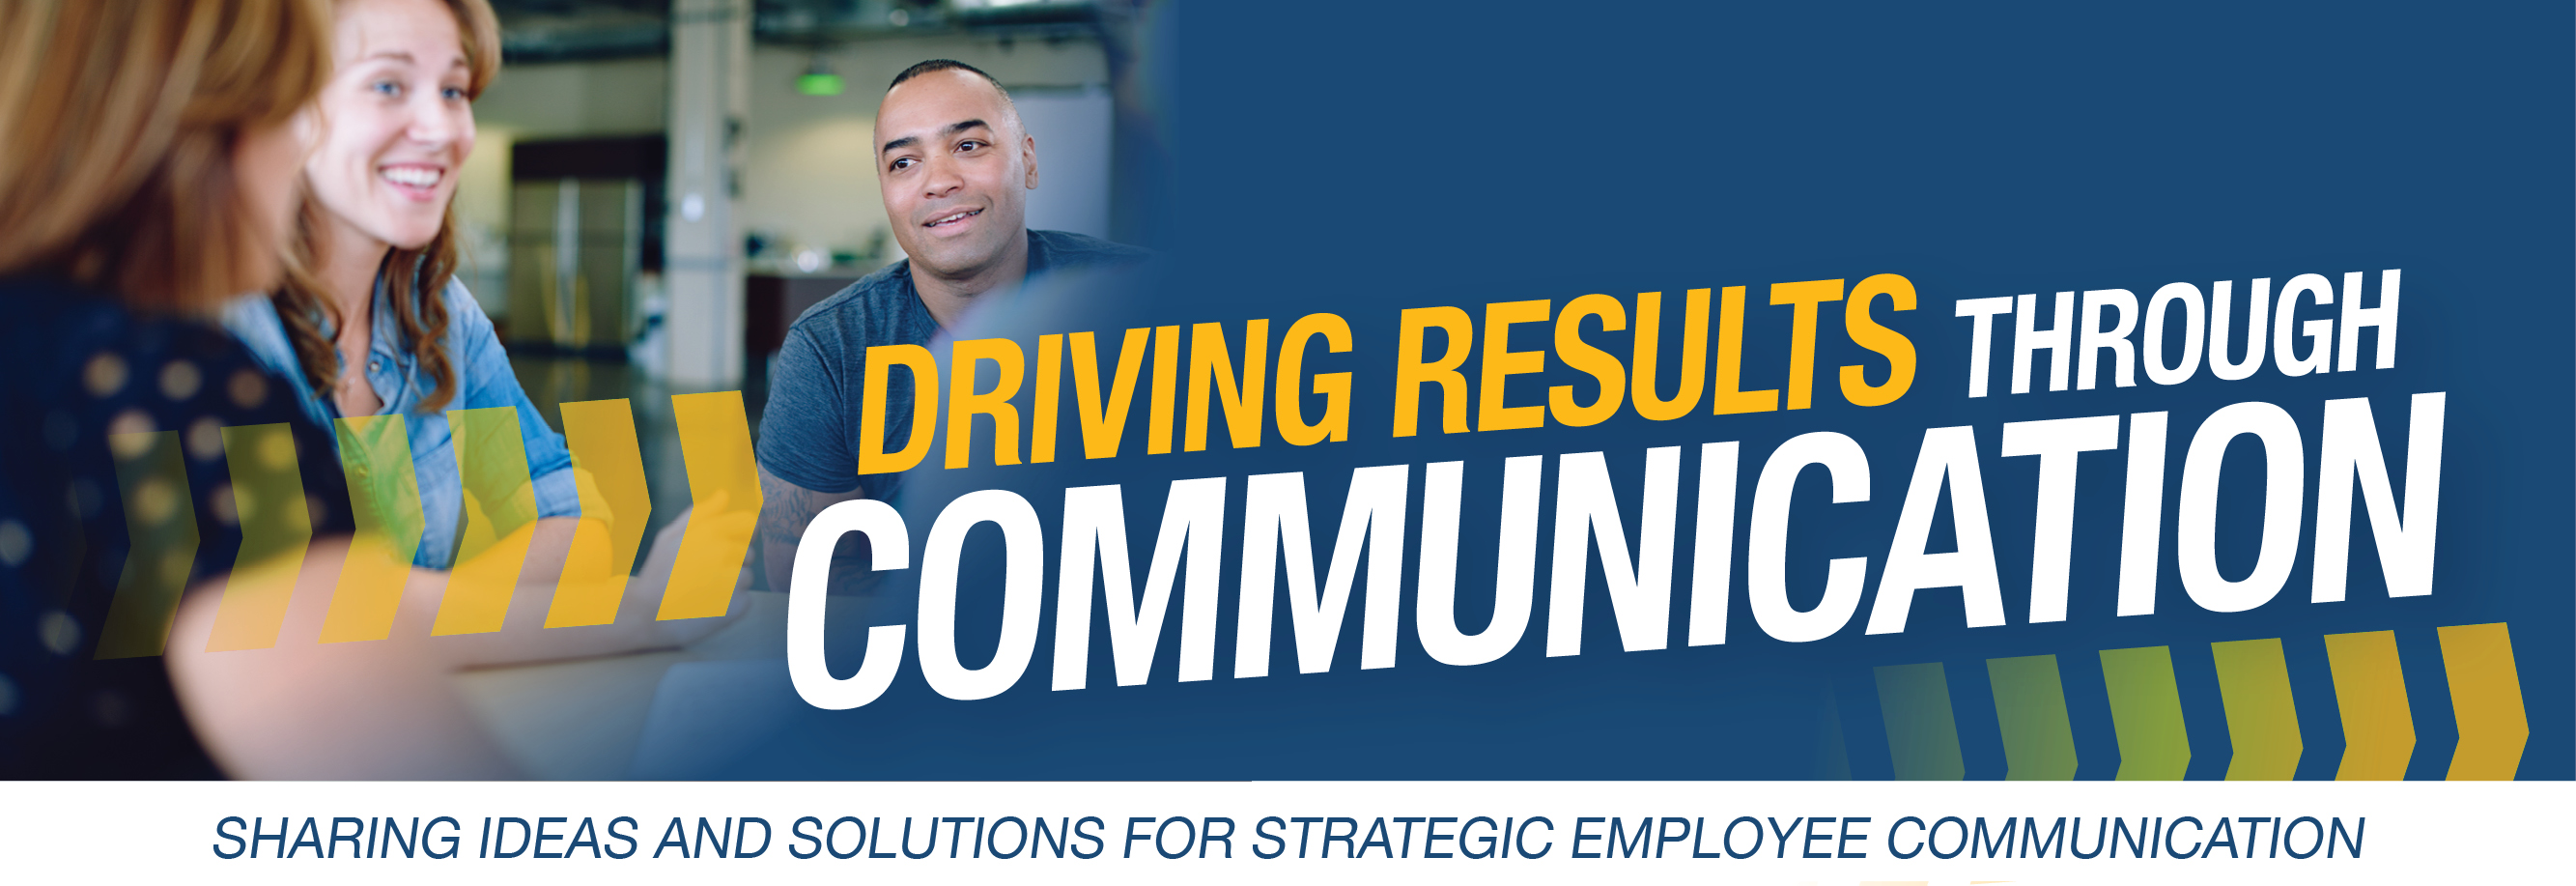 Tip #2 – Driving Results through Communication